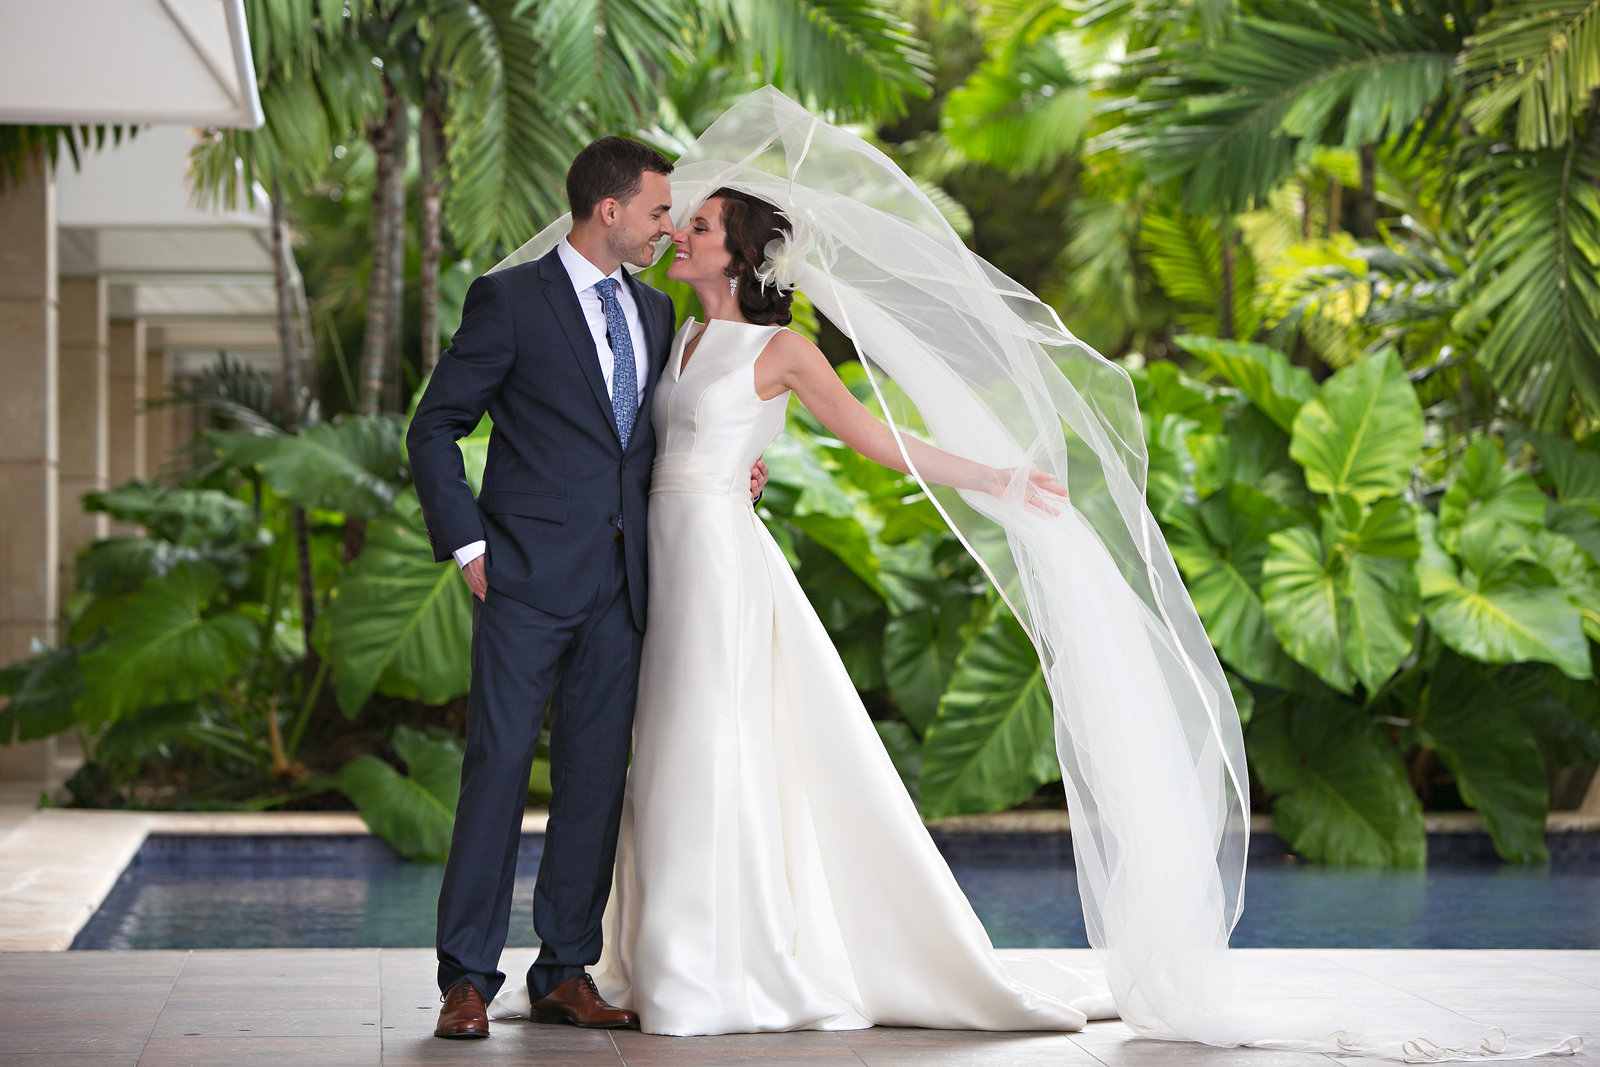 PuntaCana_destinationwedding_Dovephotography-001